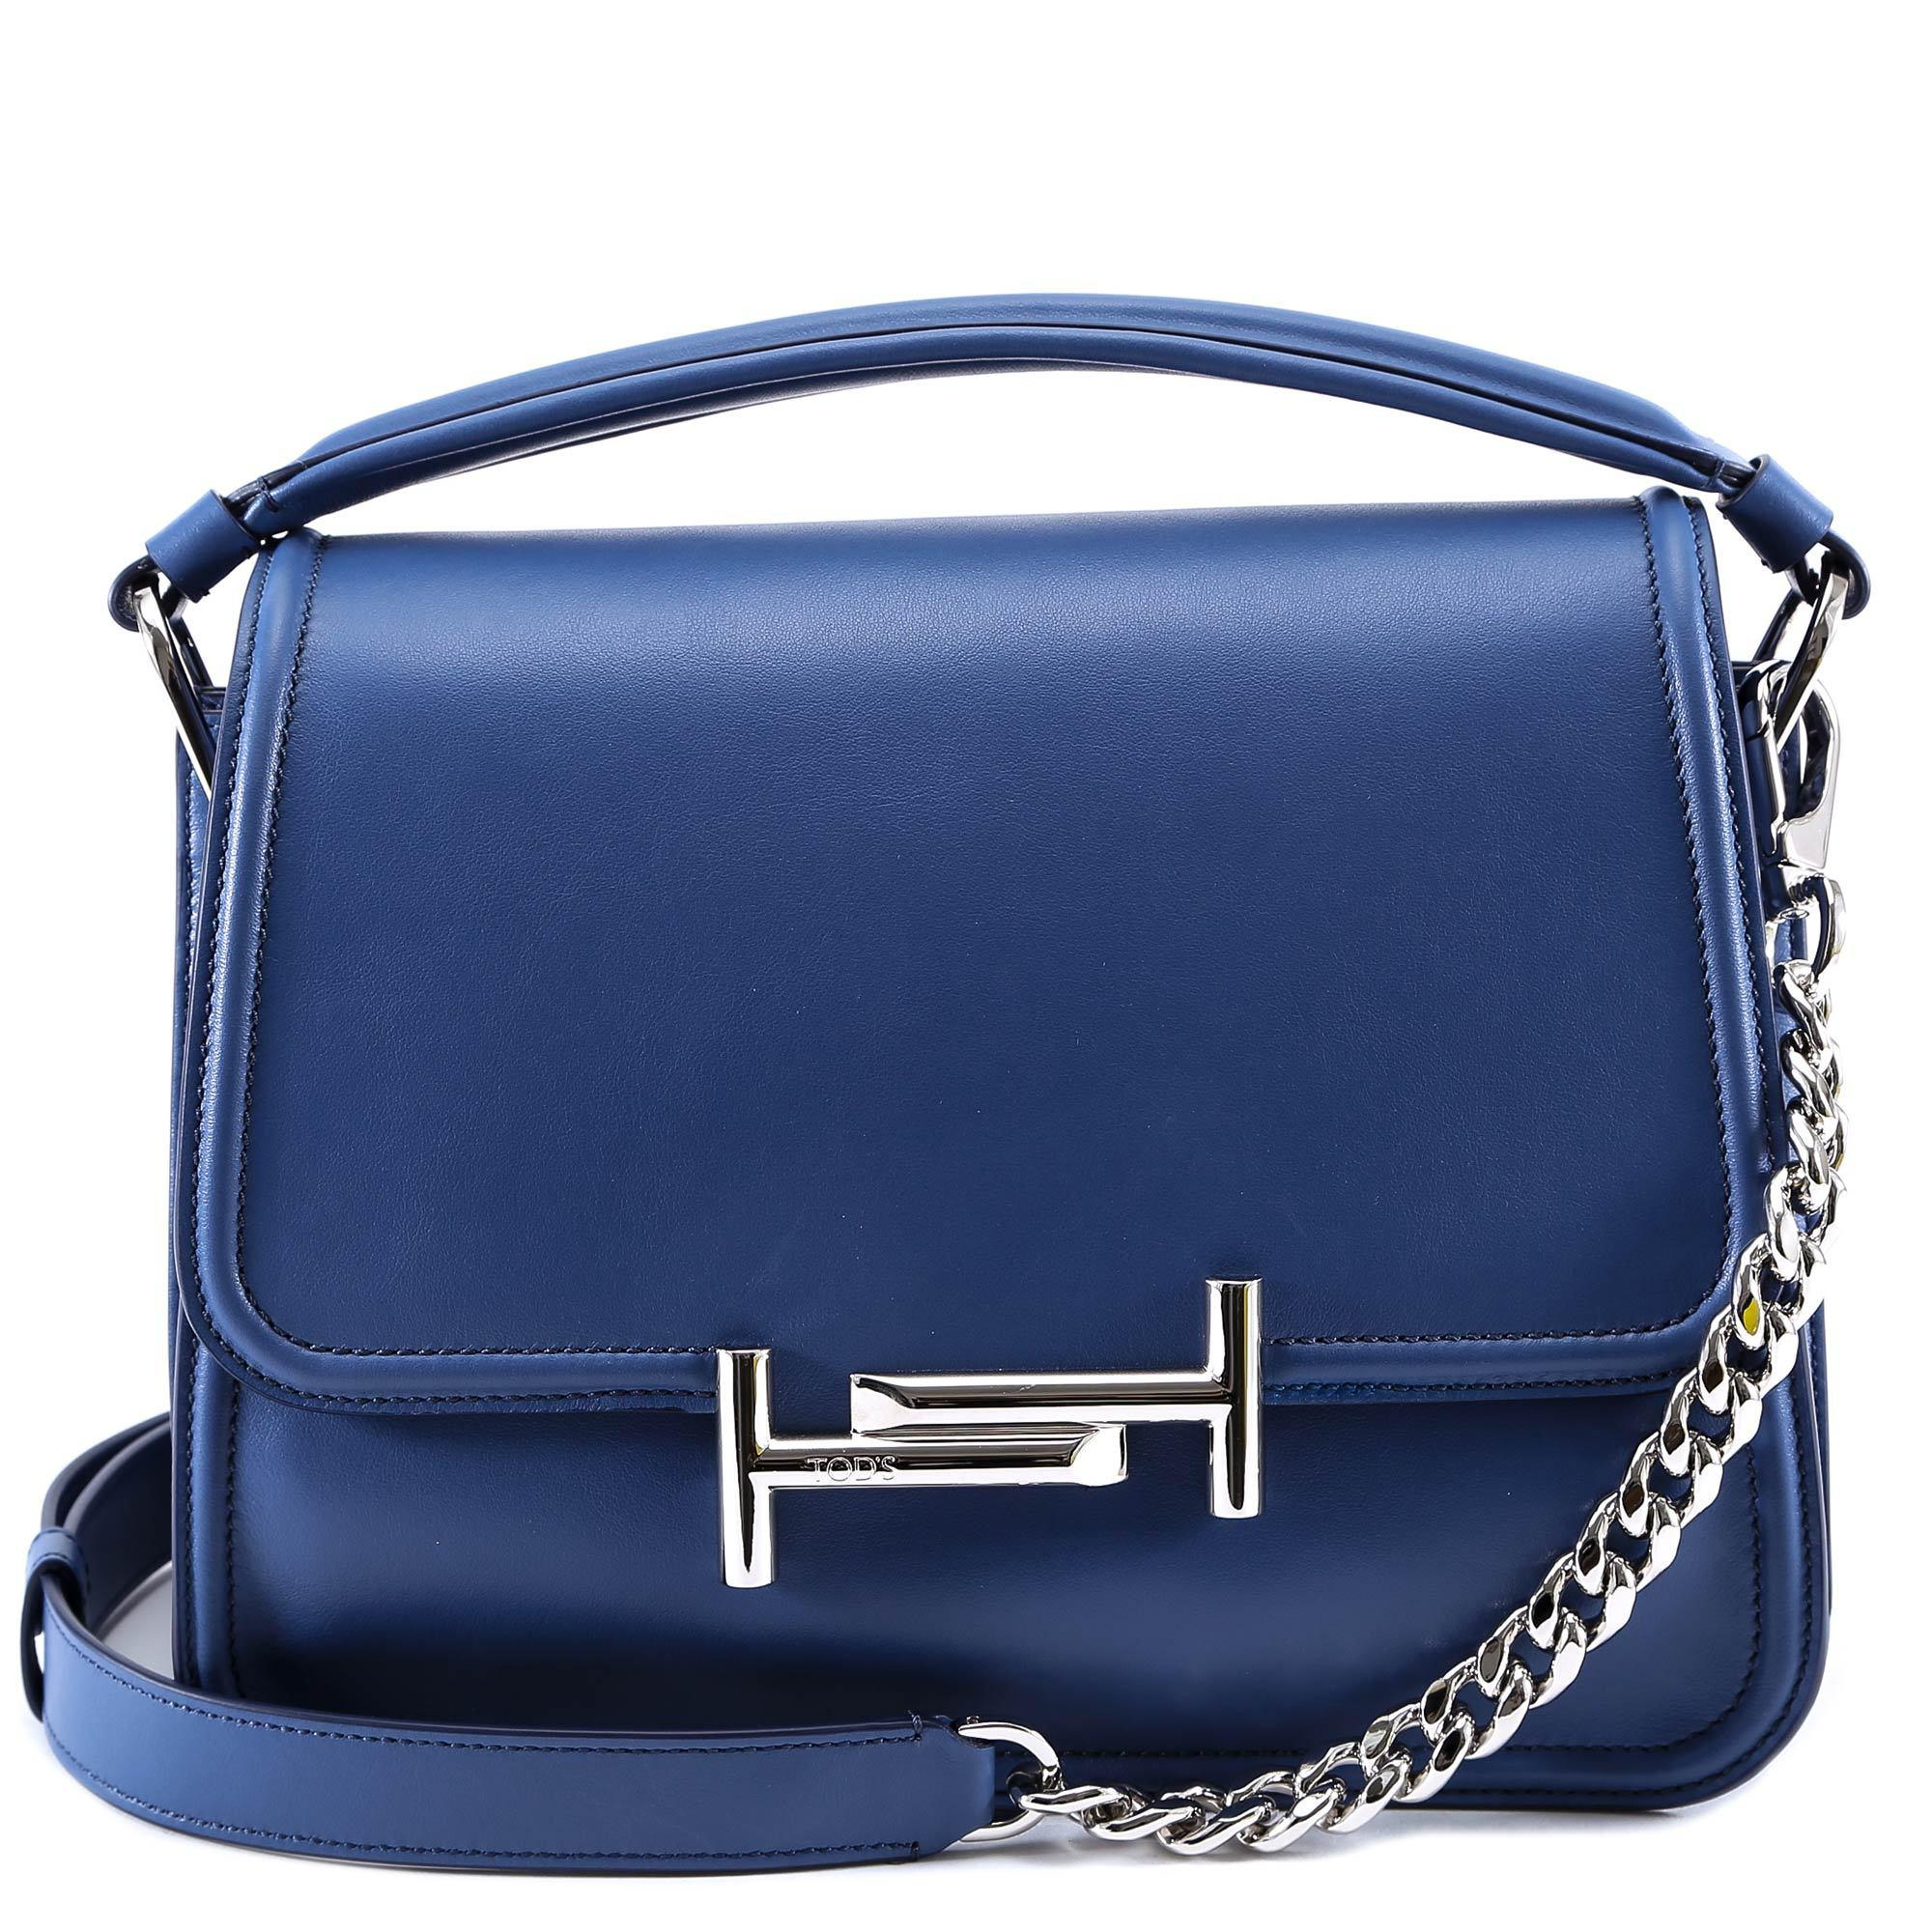 02b240d985 Tod's Small Double T Bag in Blue - Lyst